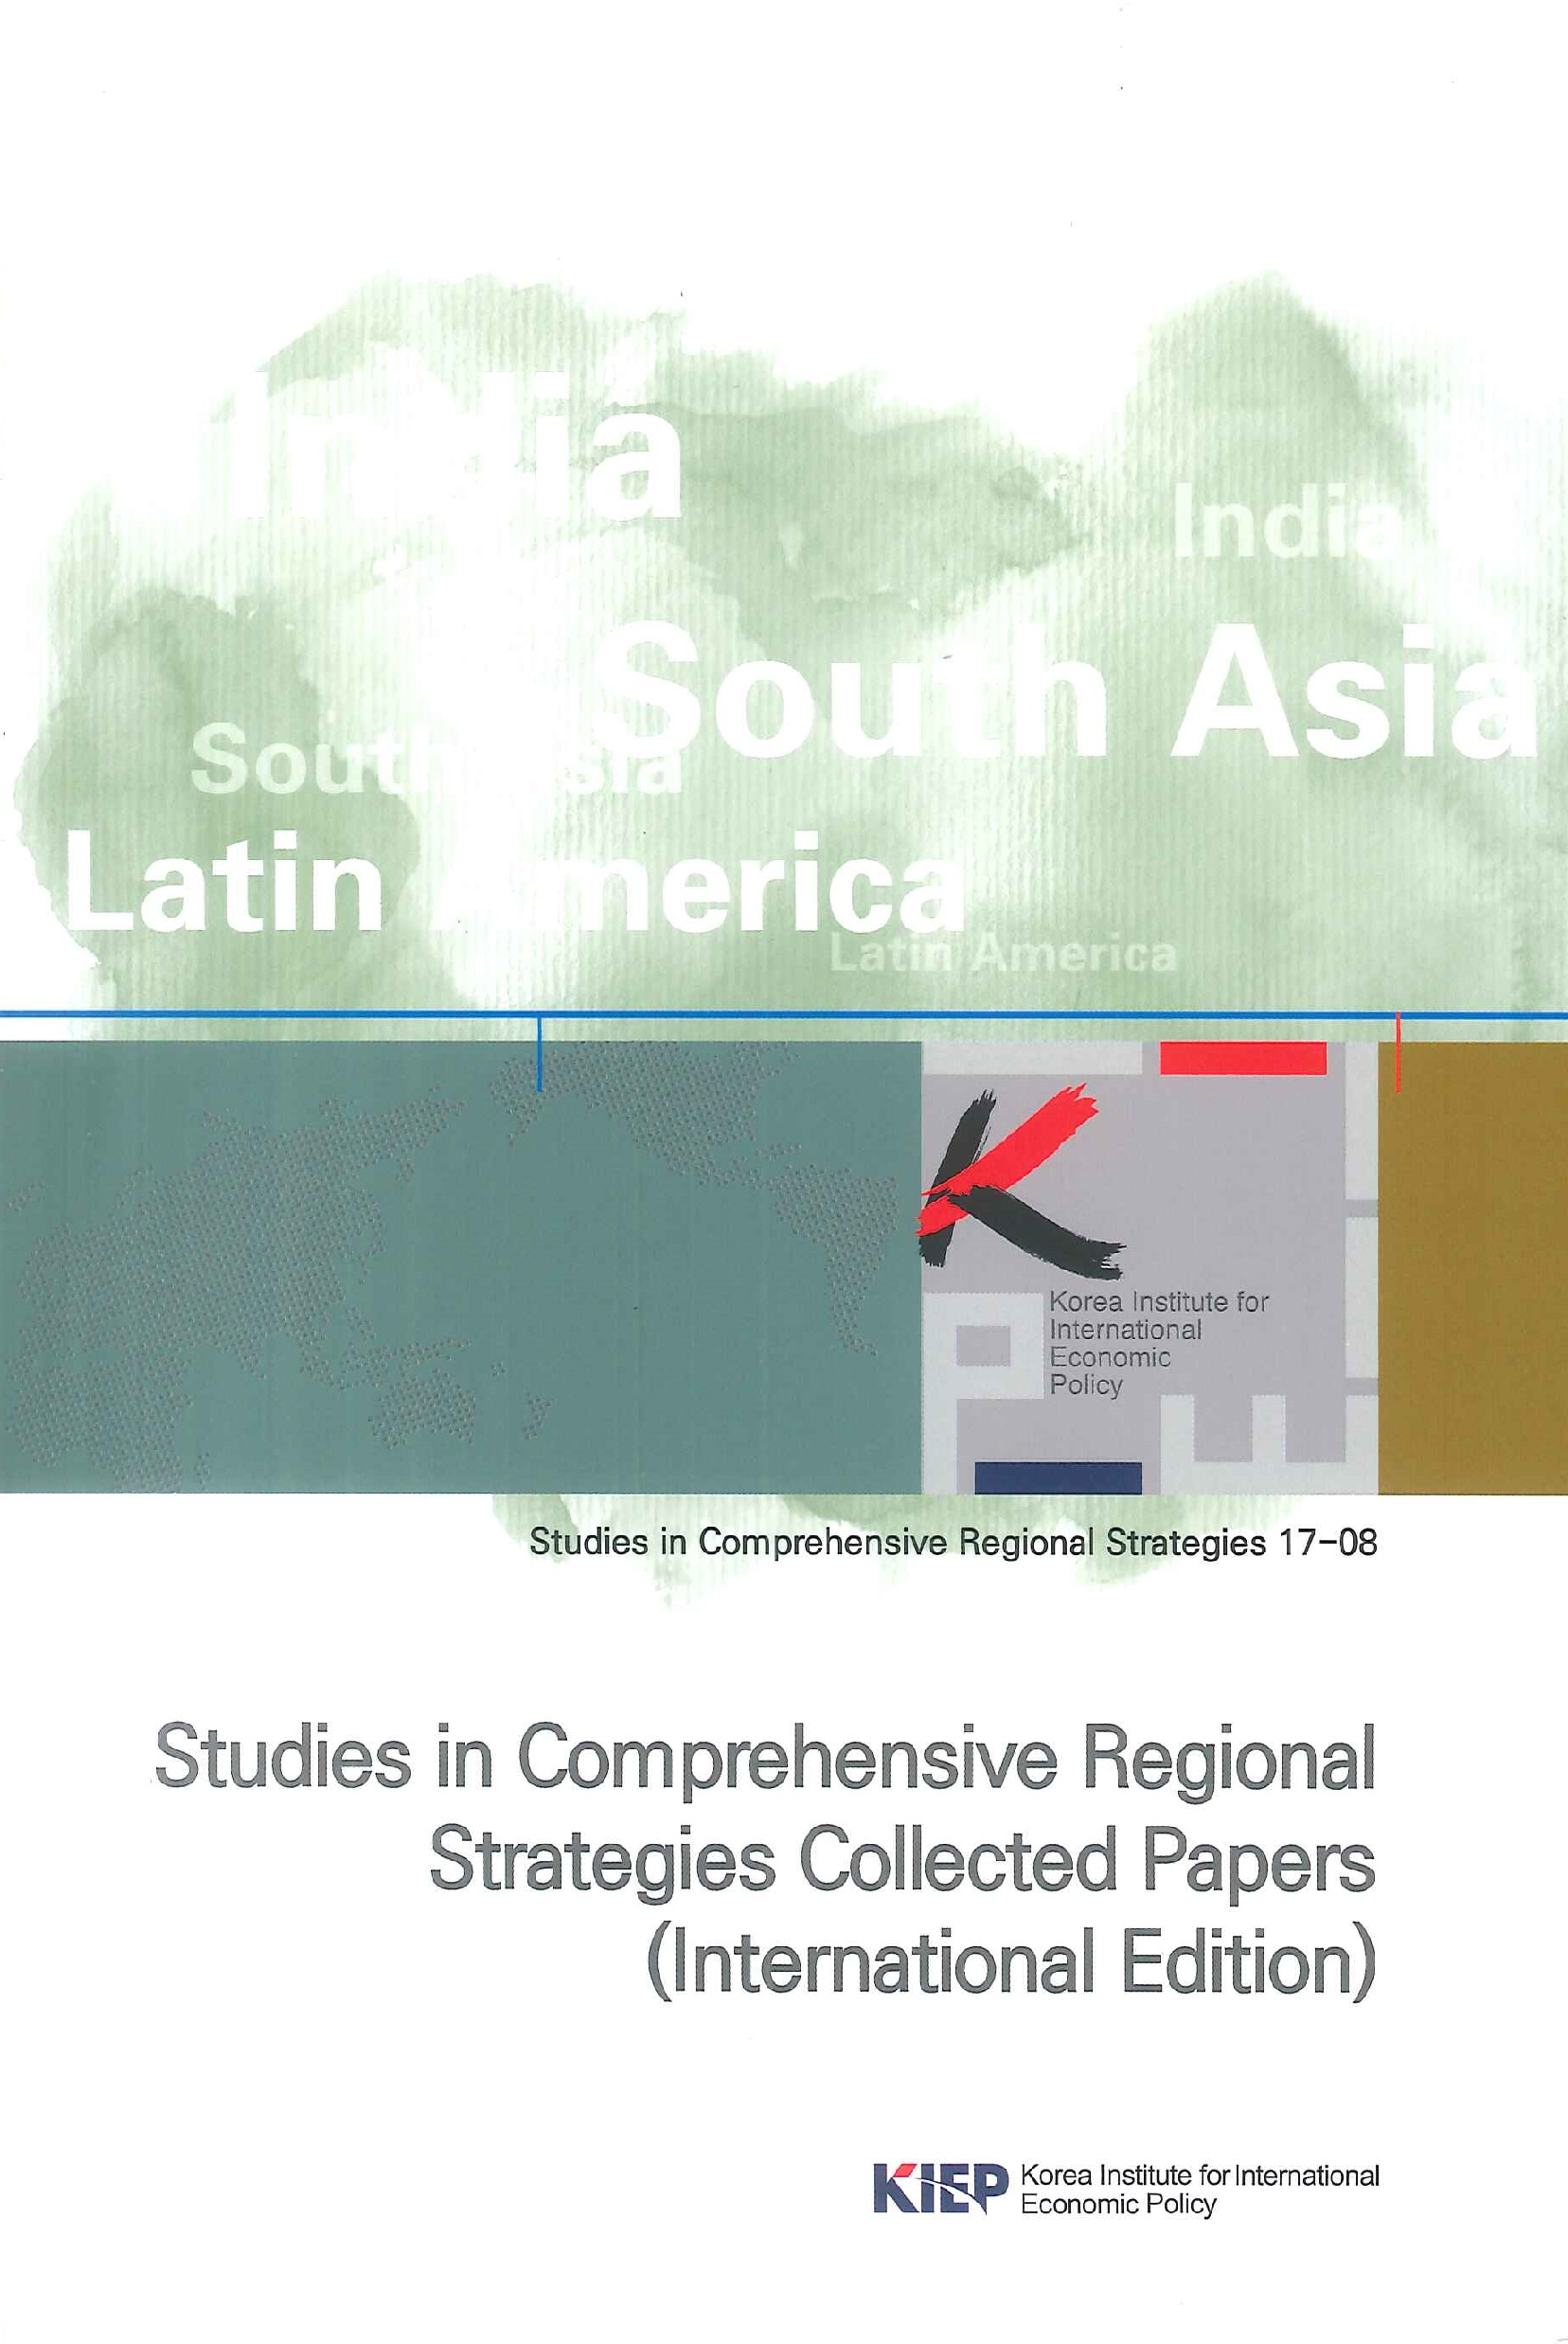 Studies in comprehensive regional strategies collected papers